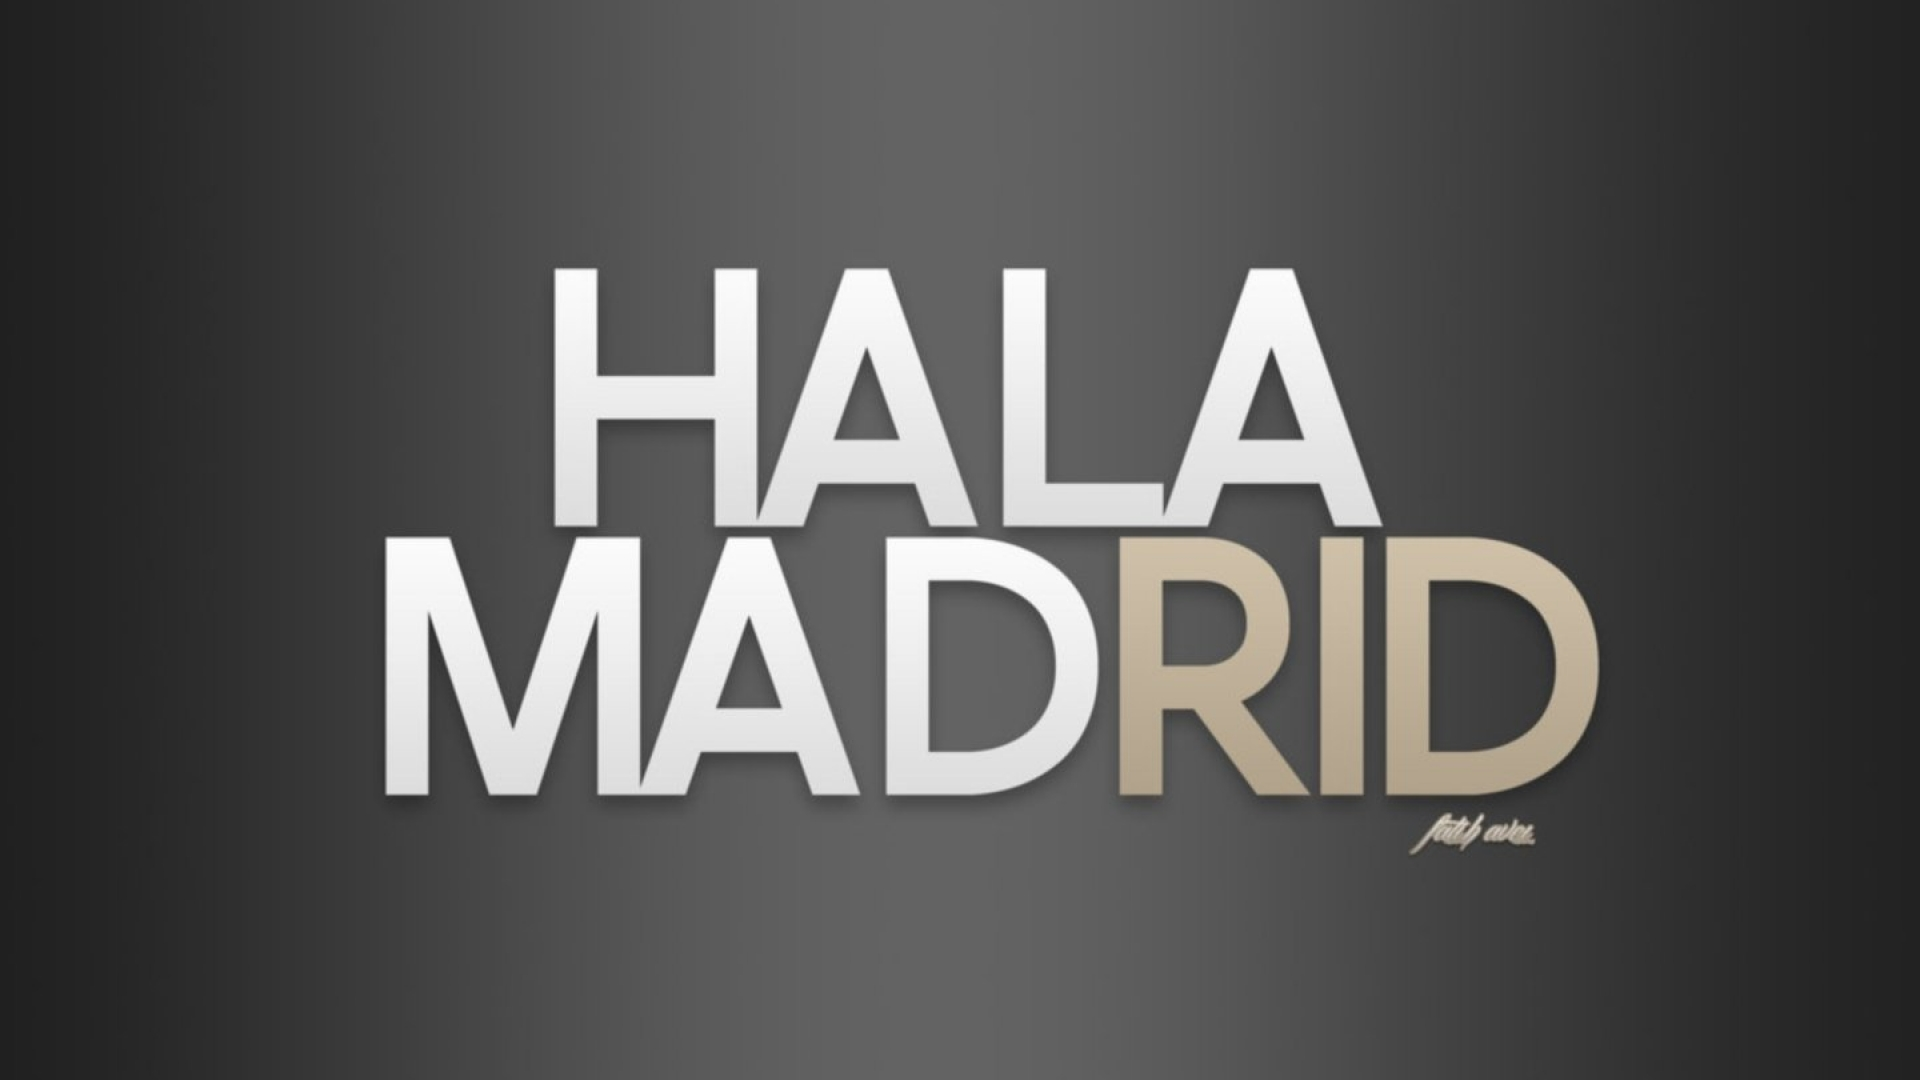 hala madrid wallpaper hd wallpapers